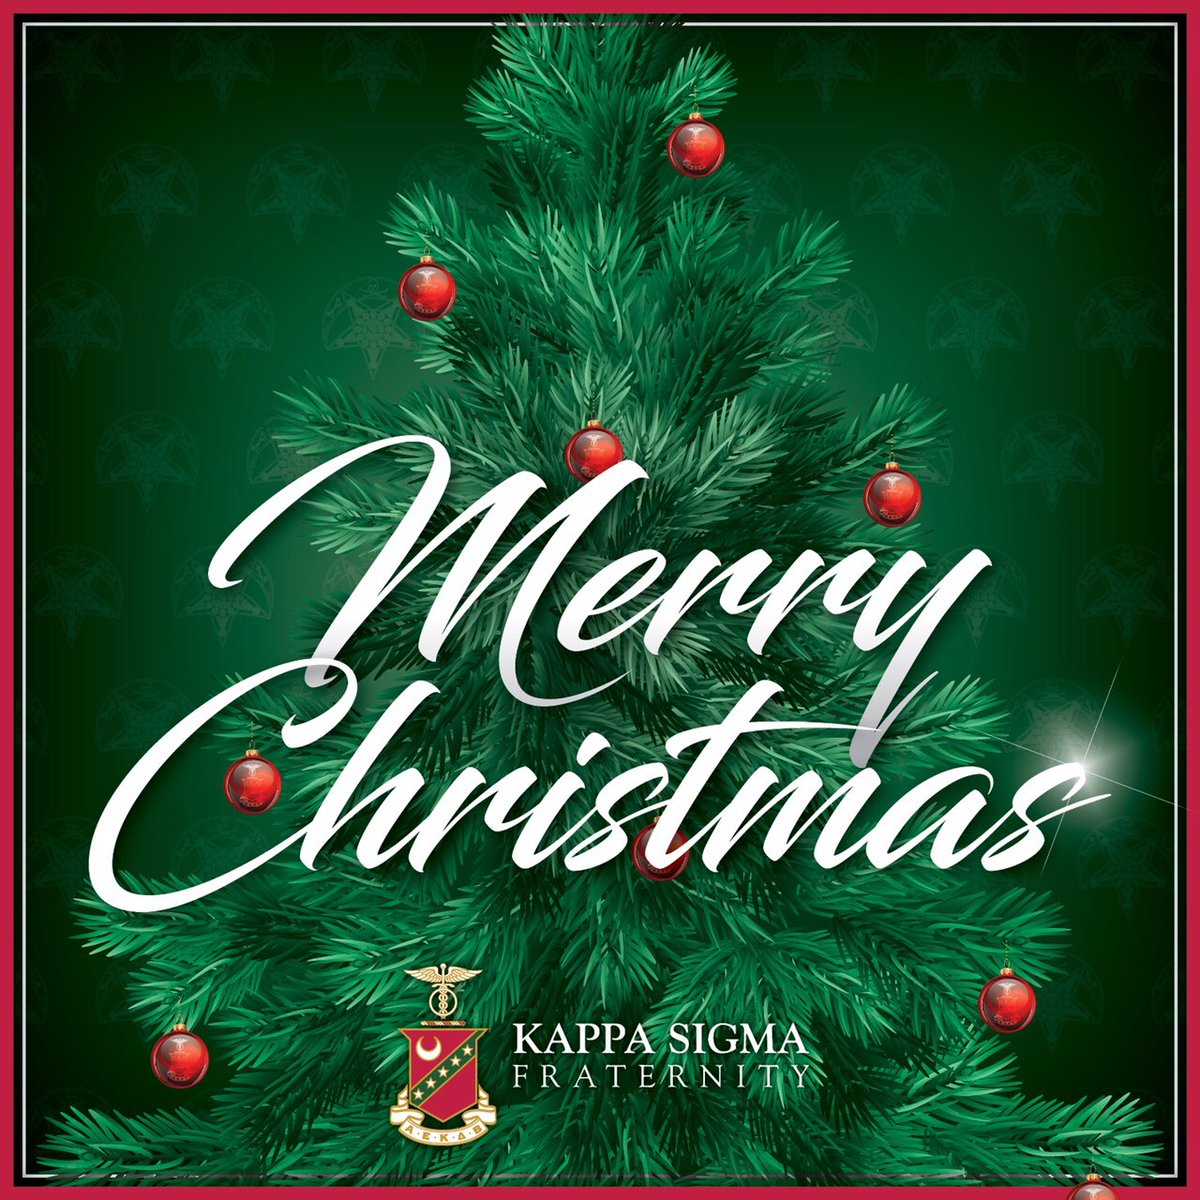 Toby H Taylor On Twitter Merry Christmas From The Kappa Sigma